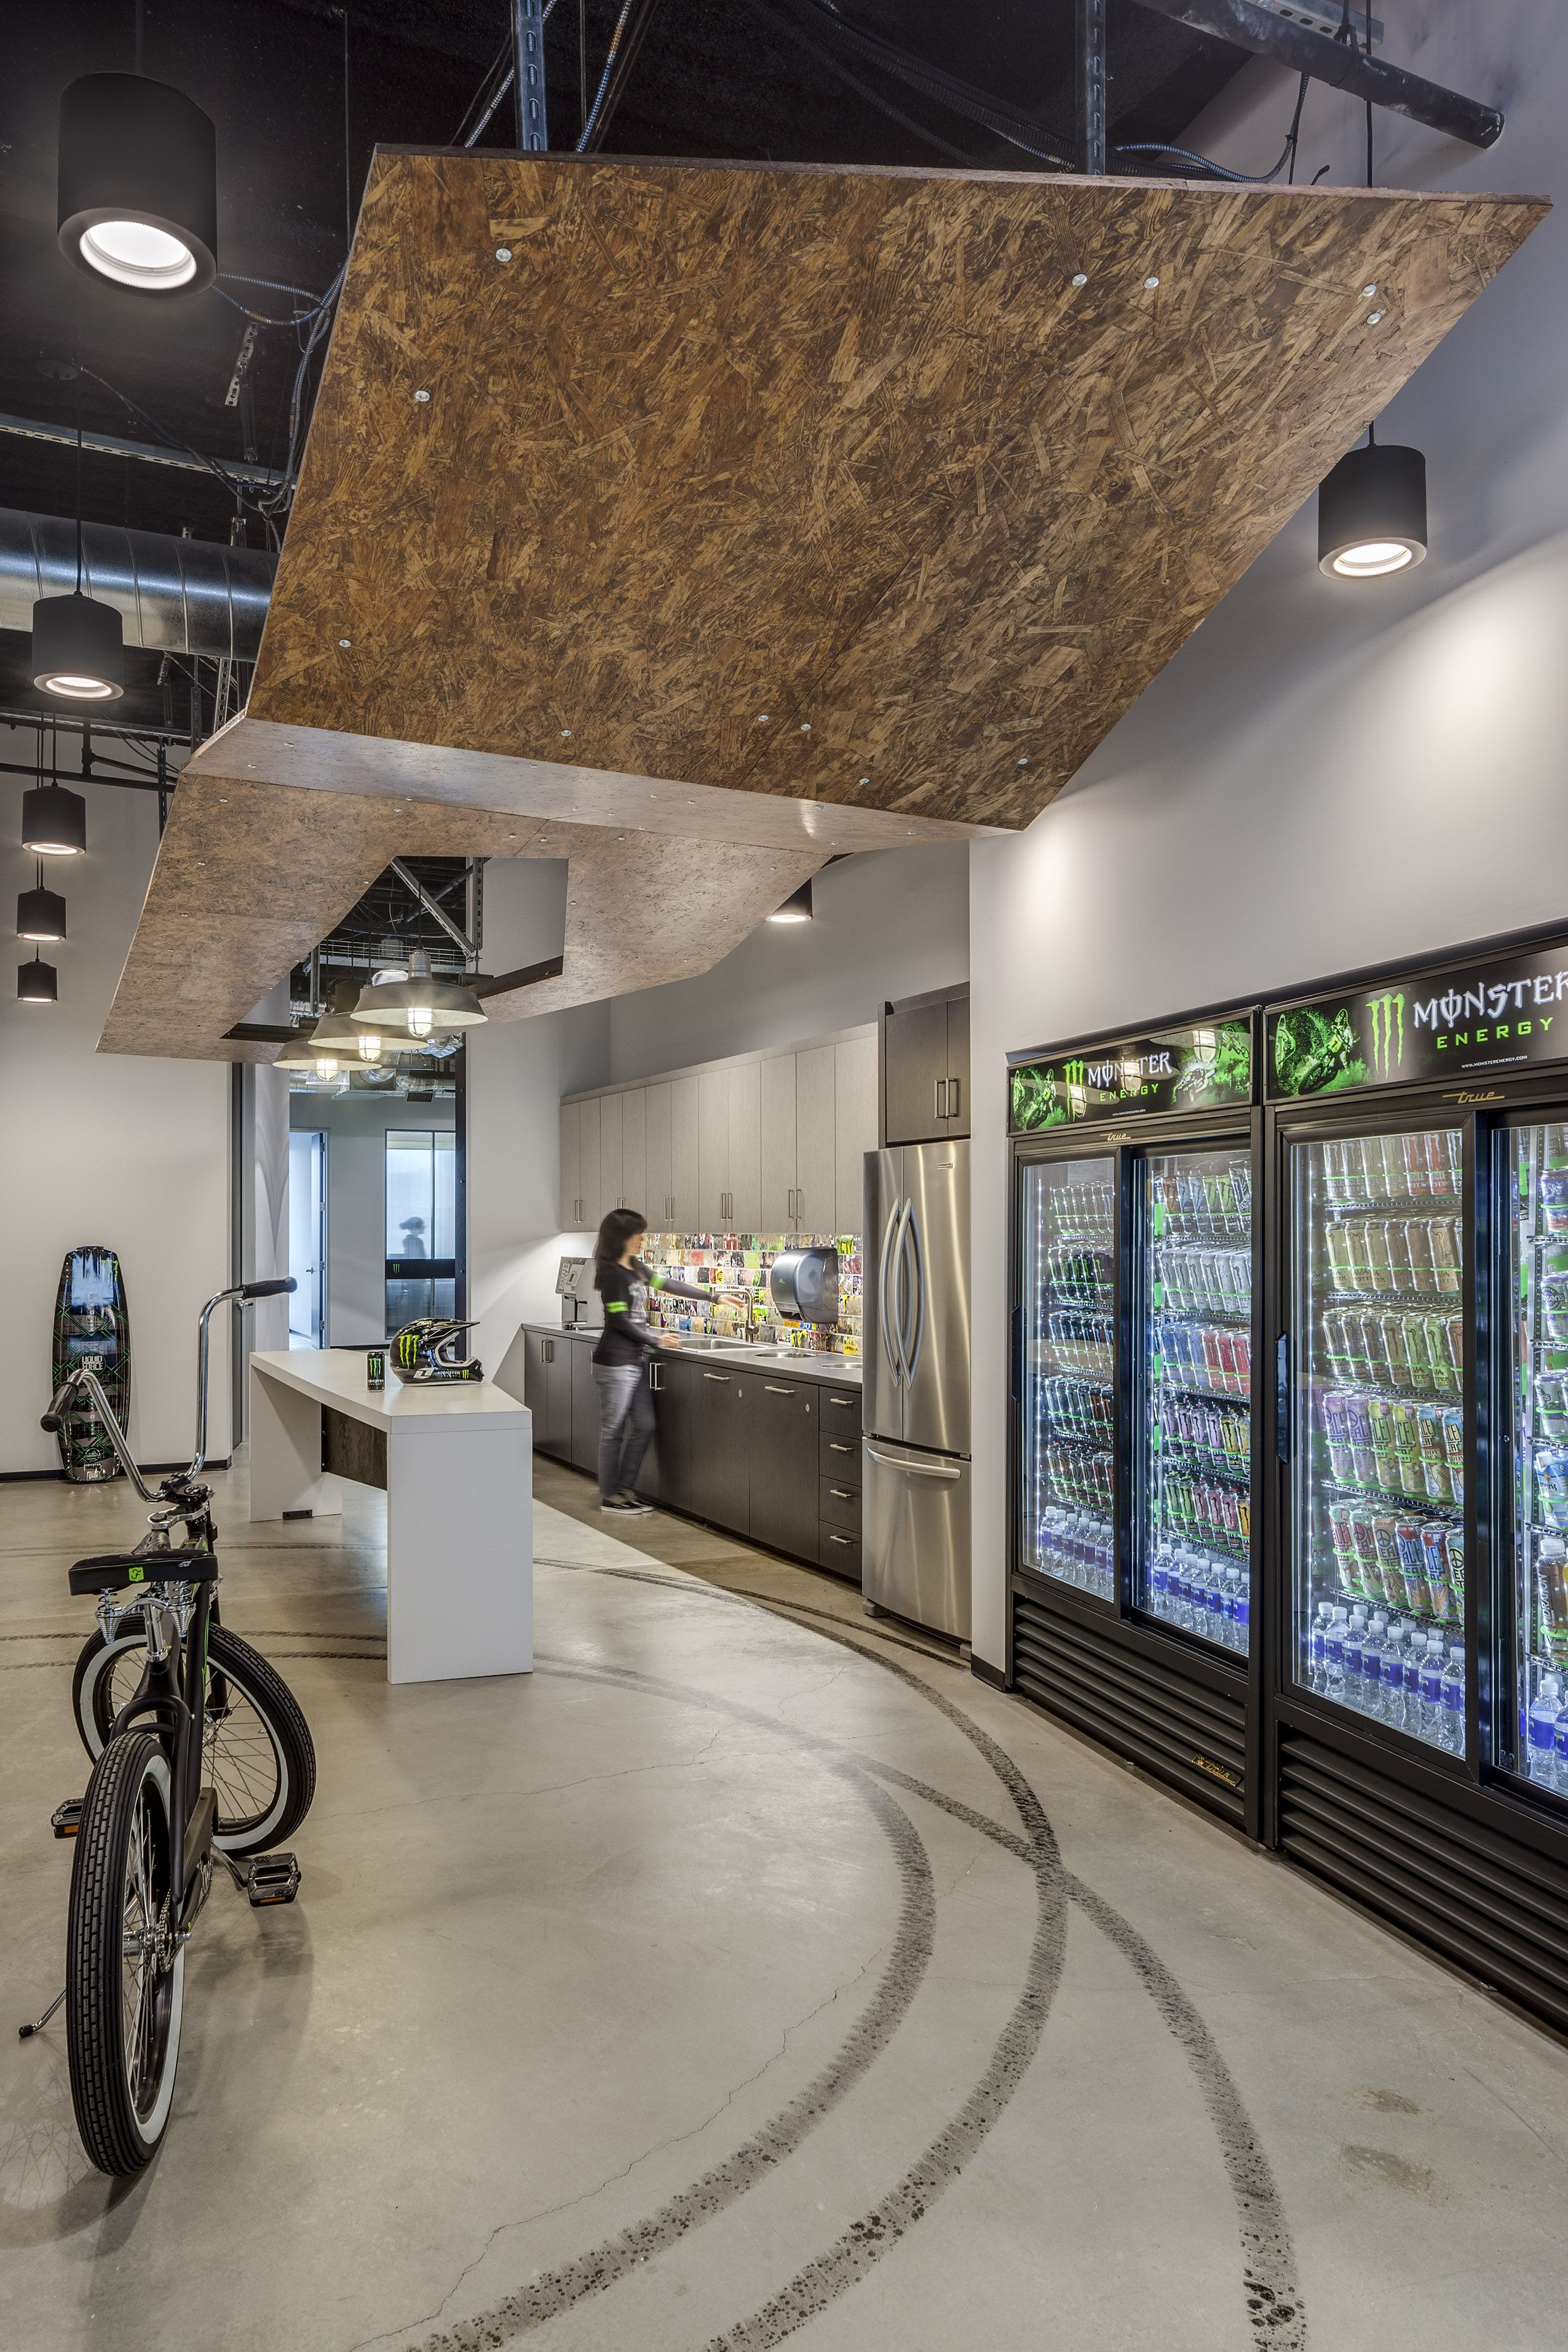 Monster Energy Headquarters Commercial Interior Design by HHendy